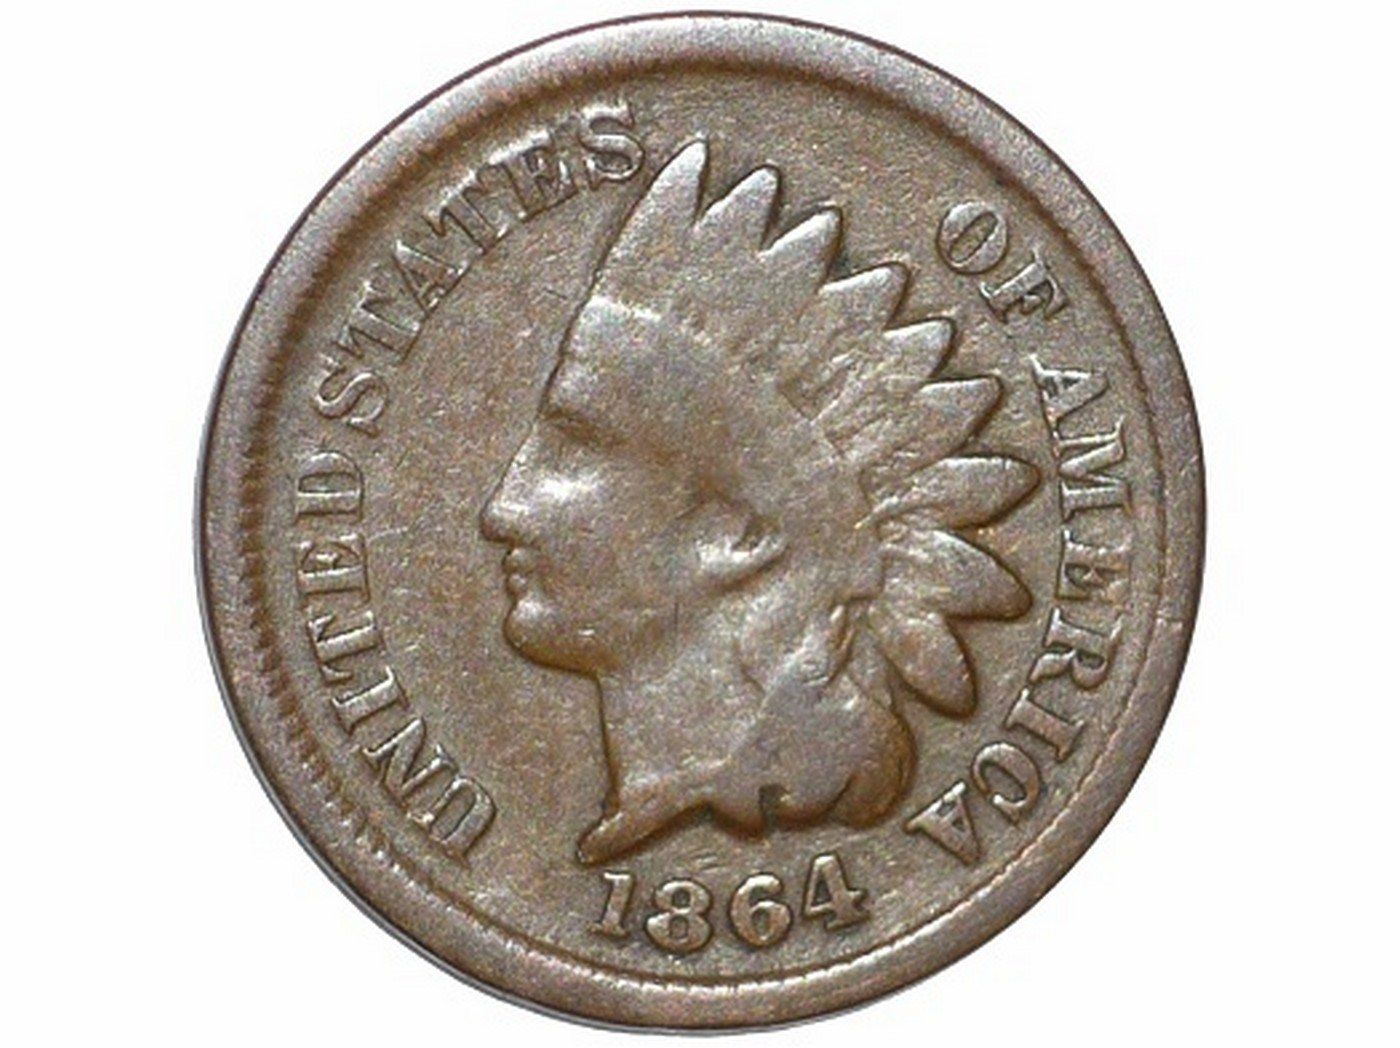 1864 Obverse of CUD-002 - Indian Head Penny - Photo by David Poliquin